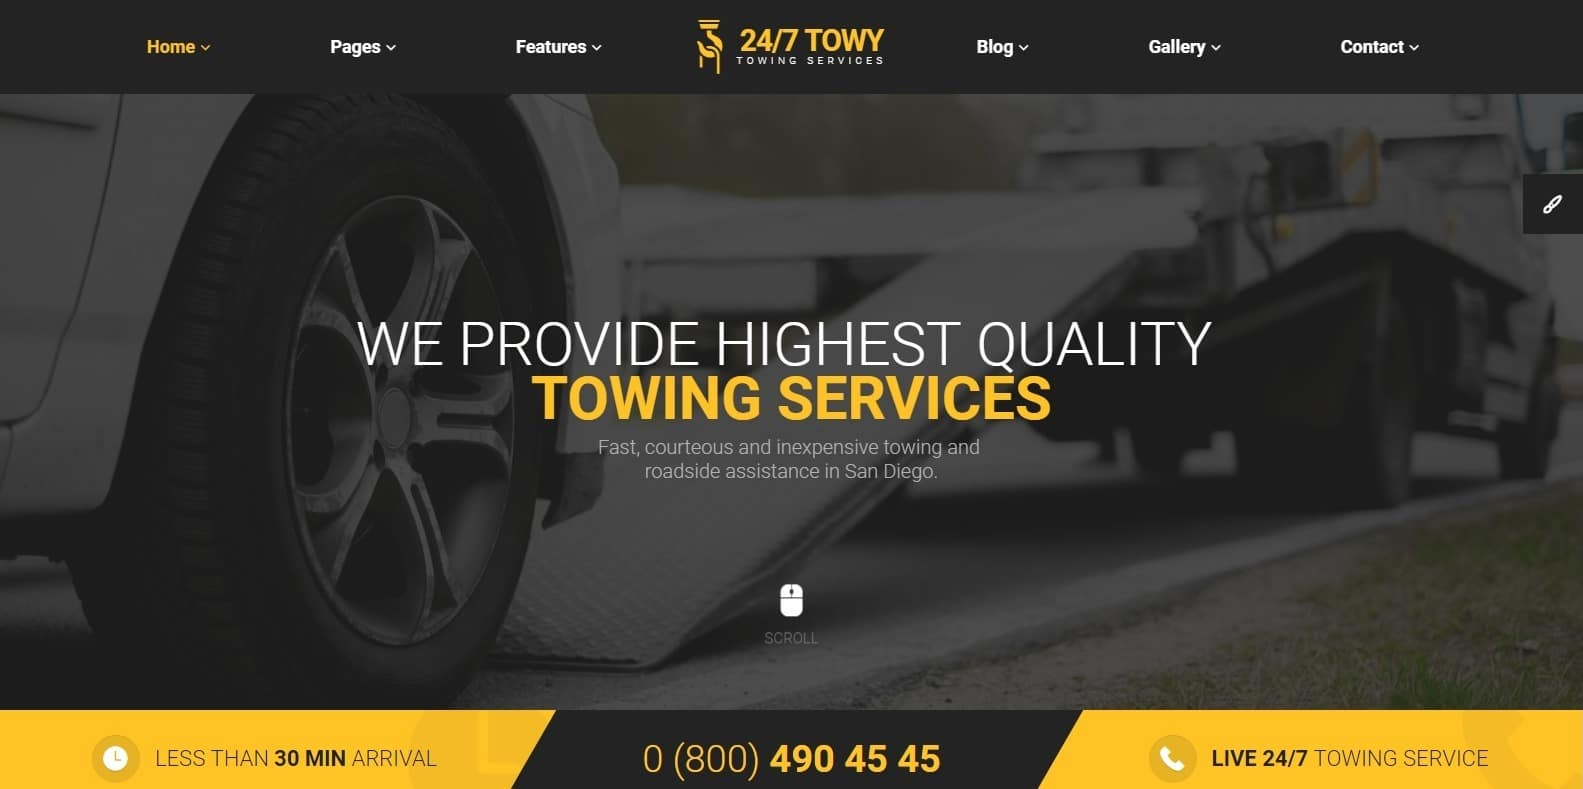 towy-automotive-website-template